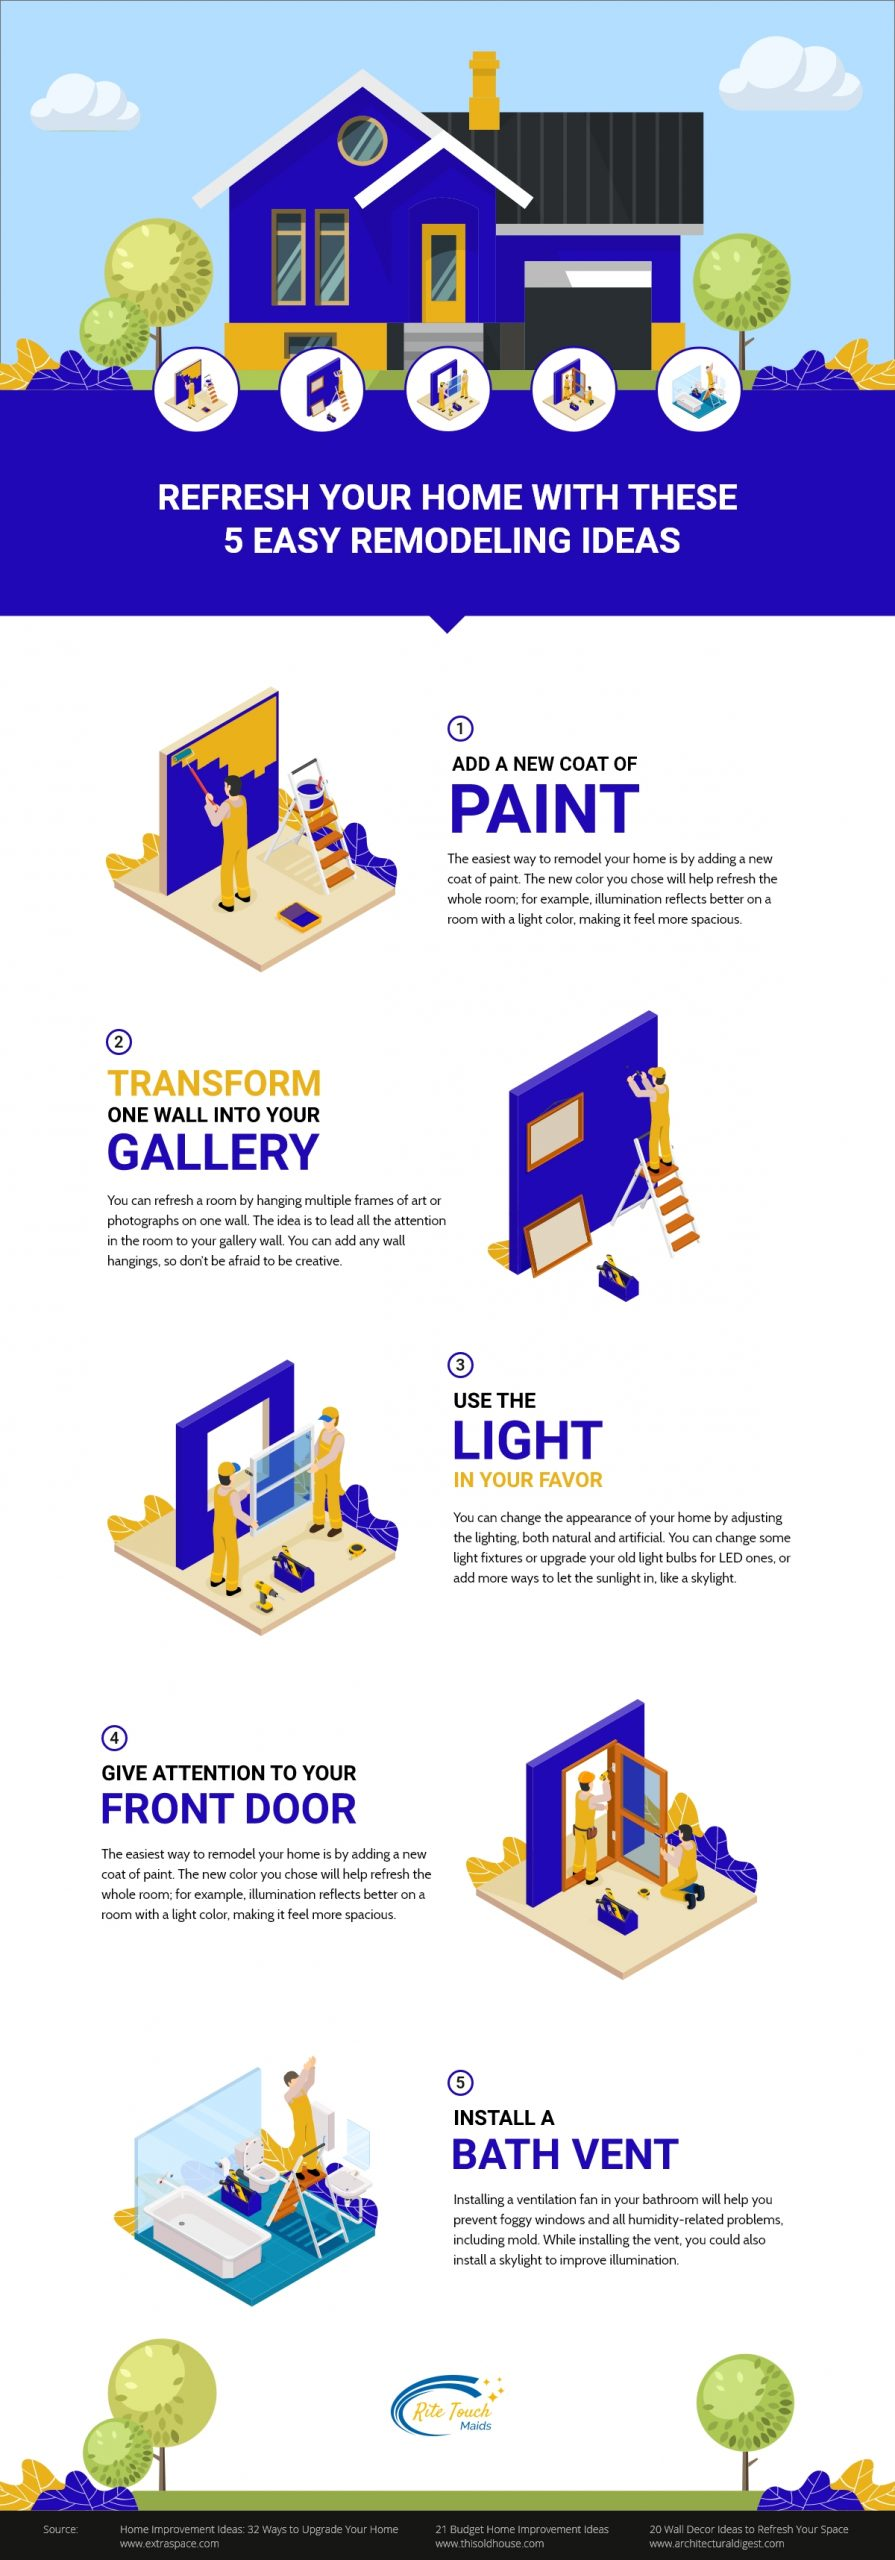 5 Easy Remodelling Ideas Infographic